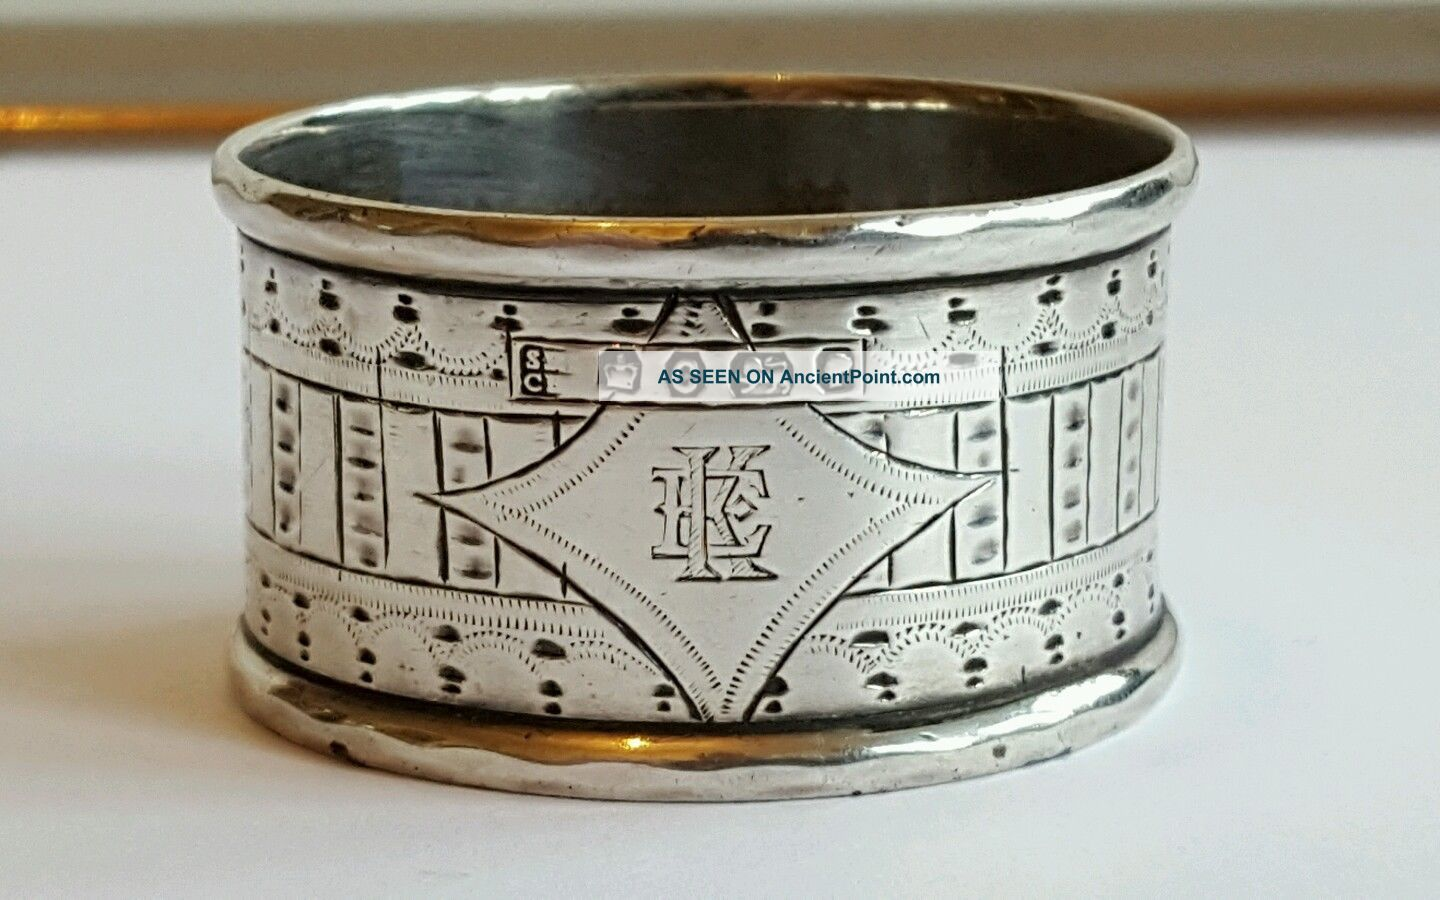 A Very Stylish Victorian Solid Silver Napkin Ring Sheffield 1870 Napkin Rings & Clips photo